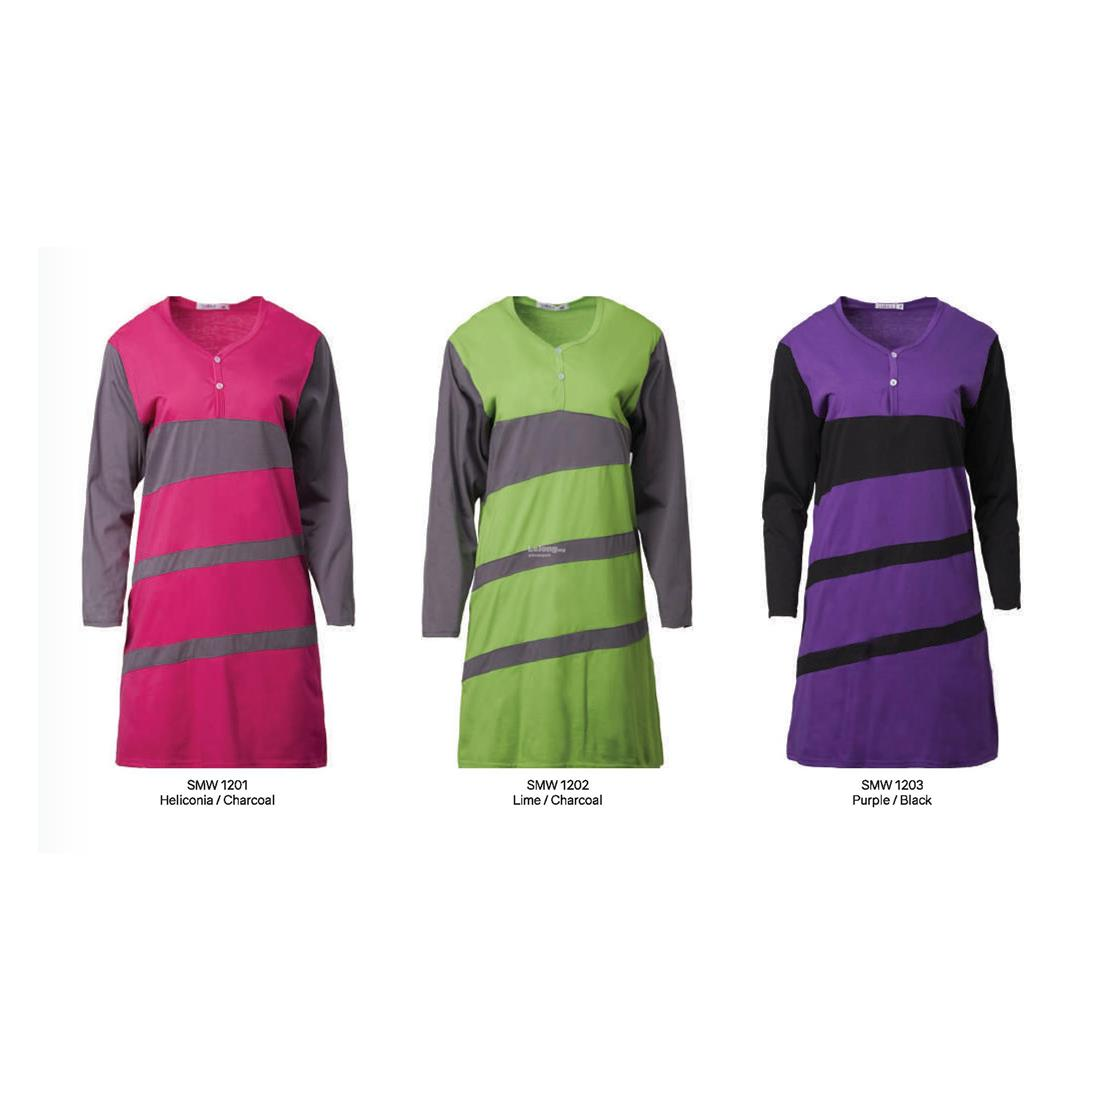 Sarra Umnia Muslimah Wear Collection SMW1200